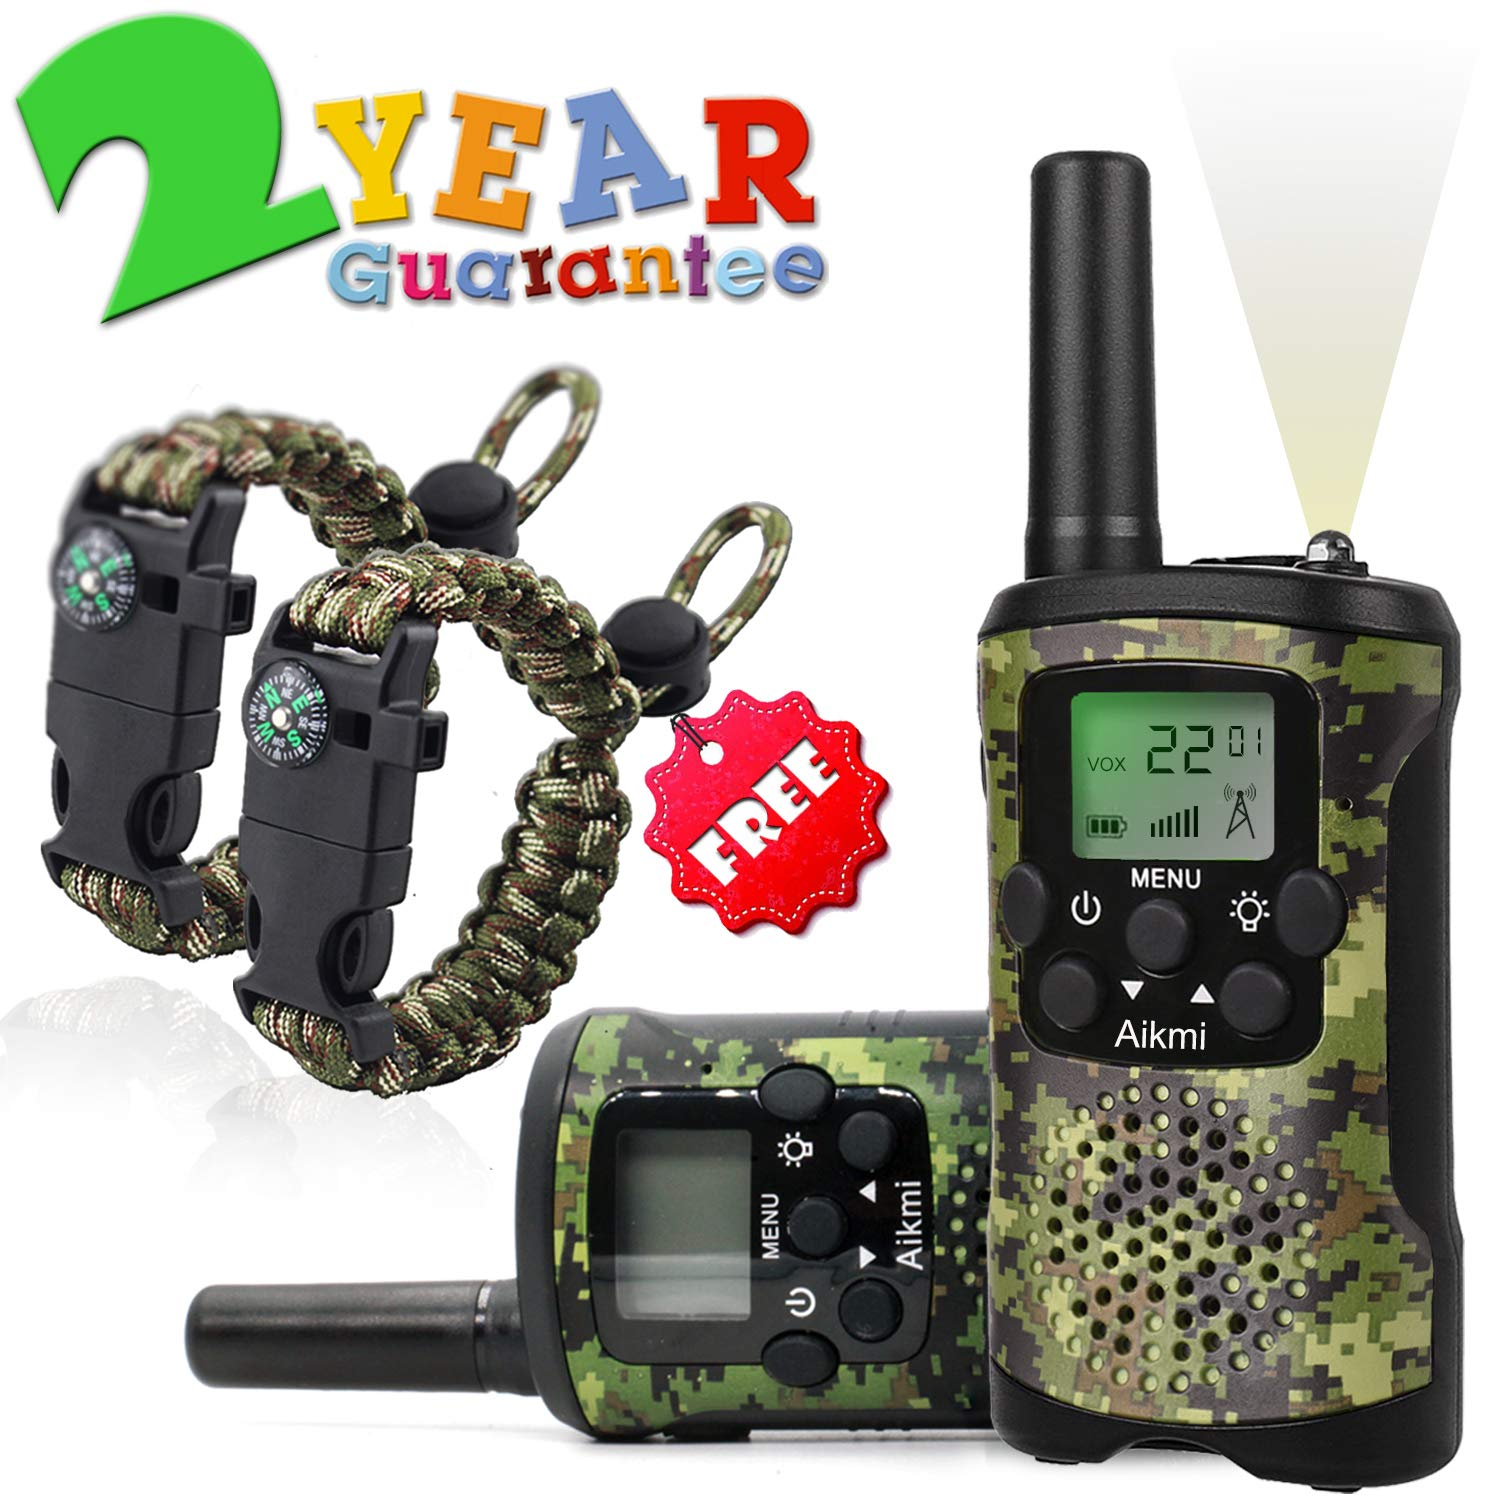 Aikmi Walkie Talkies for Kids 22 Channel 2 Way Radio 3 Miles Long Range Handheld Walkie Talkies Durable Toy Best Birthday Gifts for 6 Year Old Boys and Girls fit Adventure Game Camping (Green Camo 1) by Aikmi